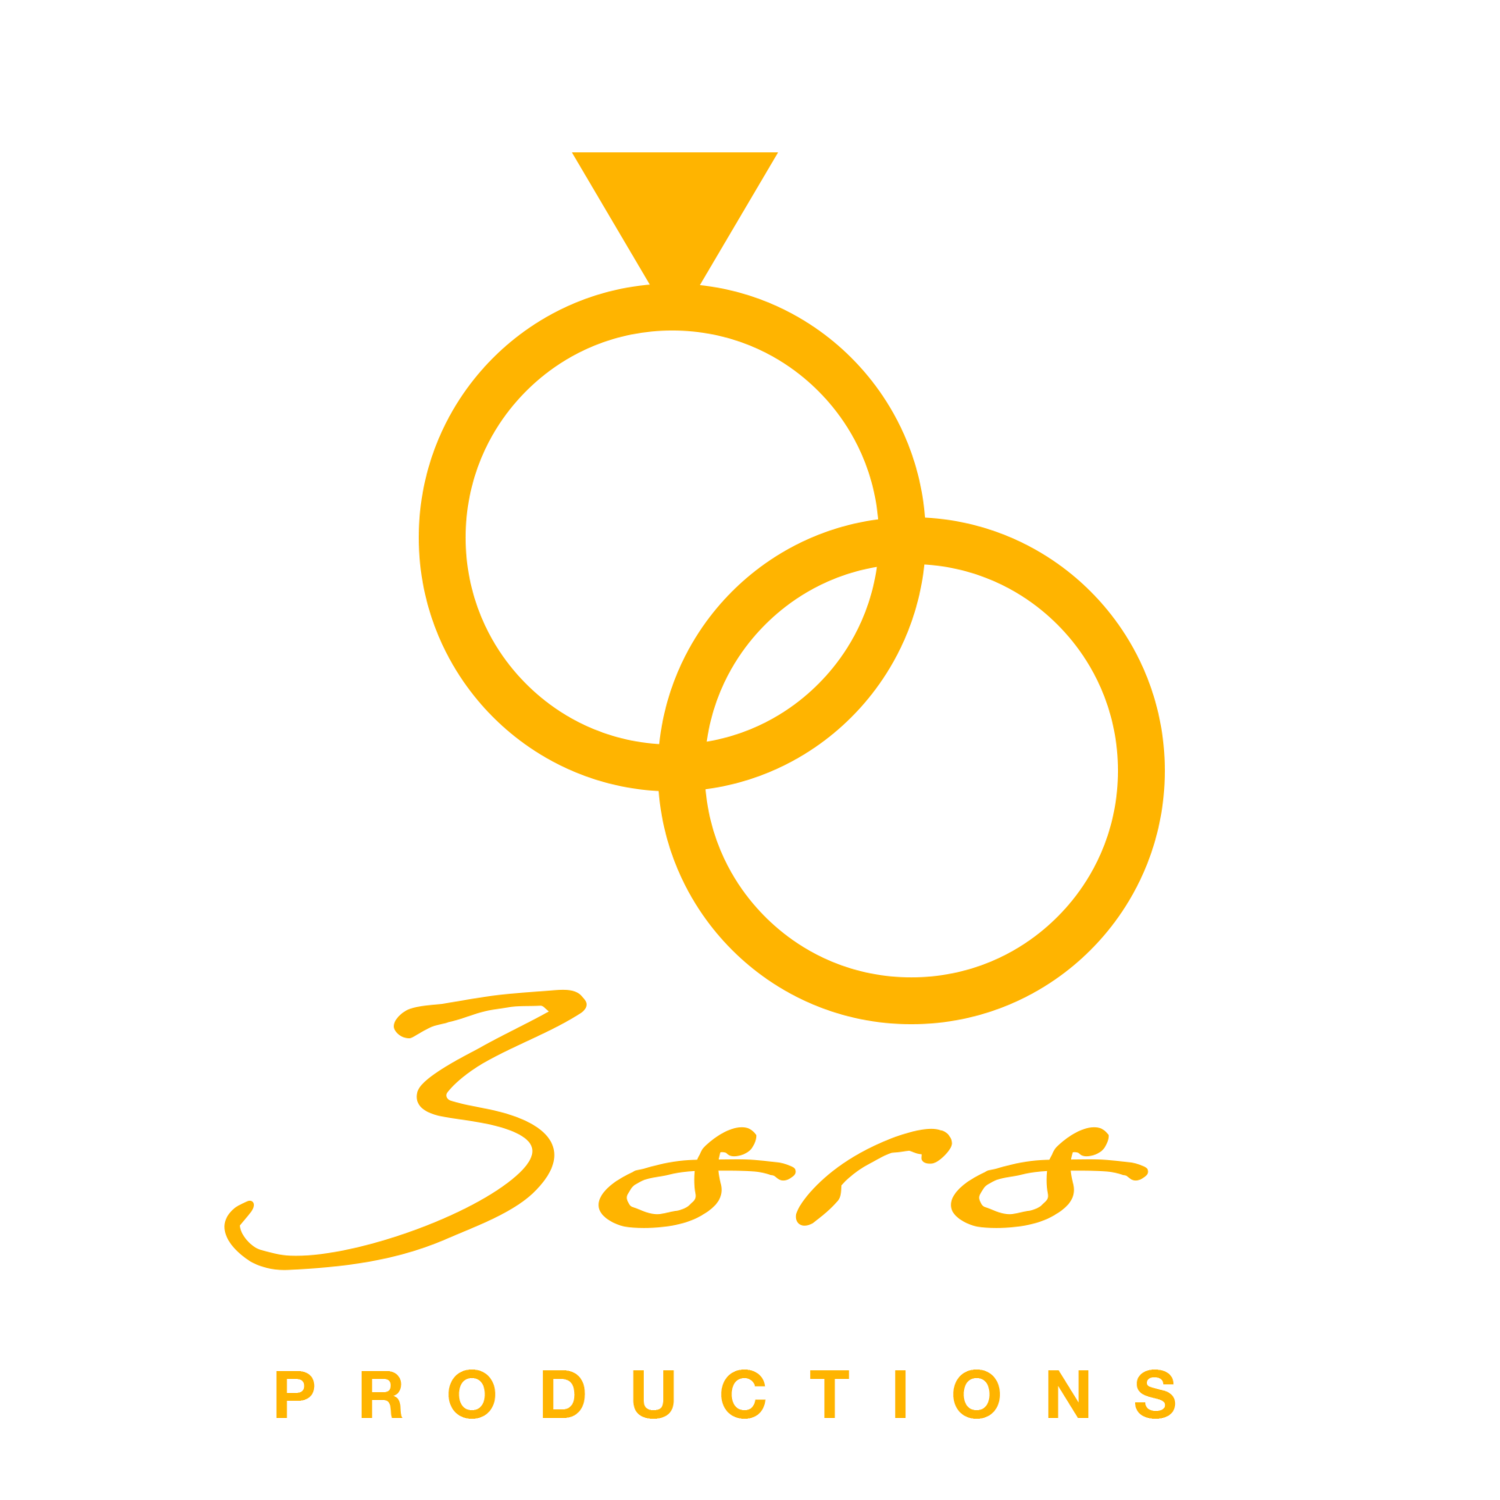 3srsproductions.com